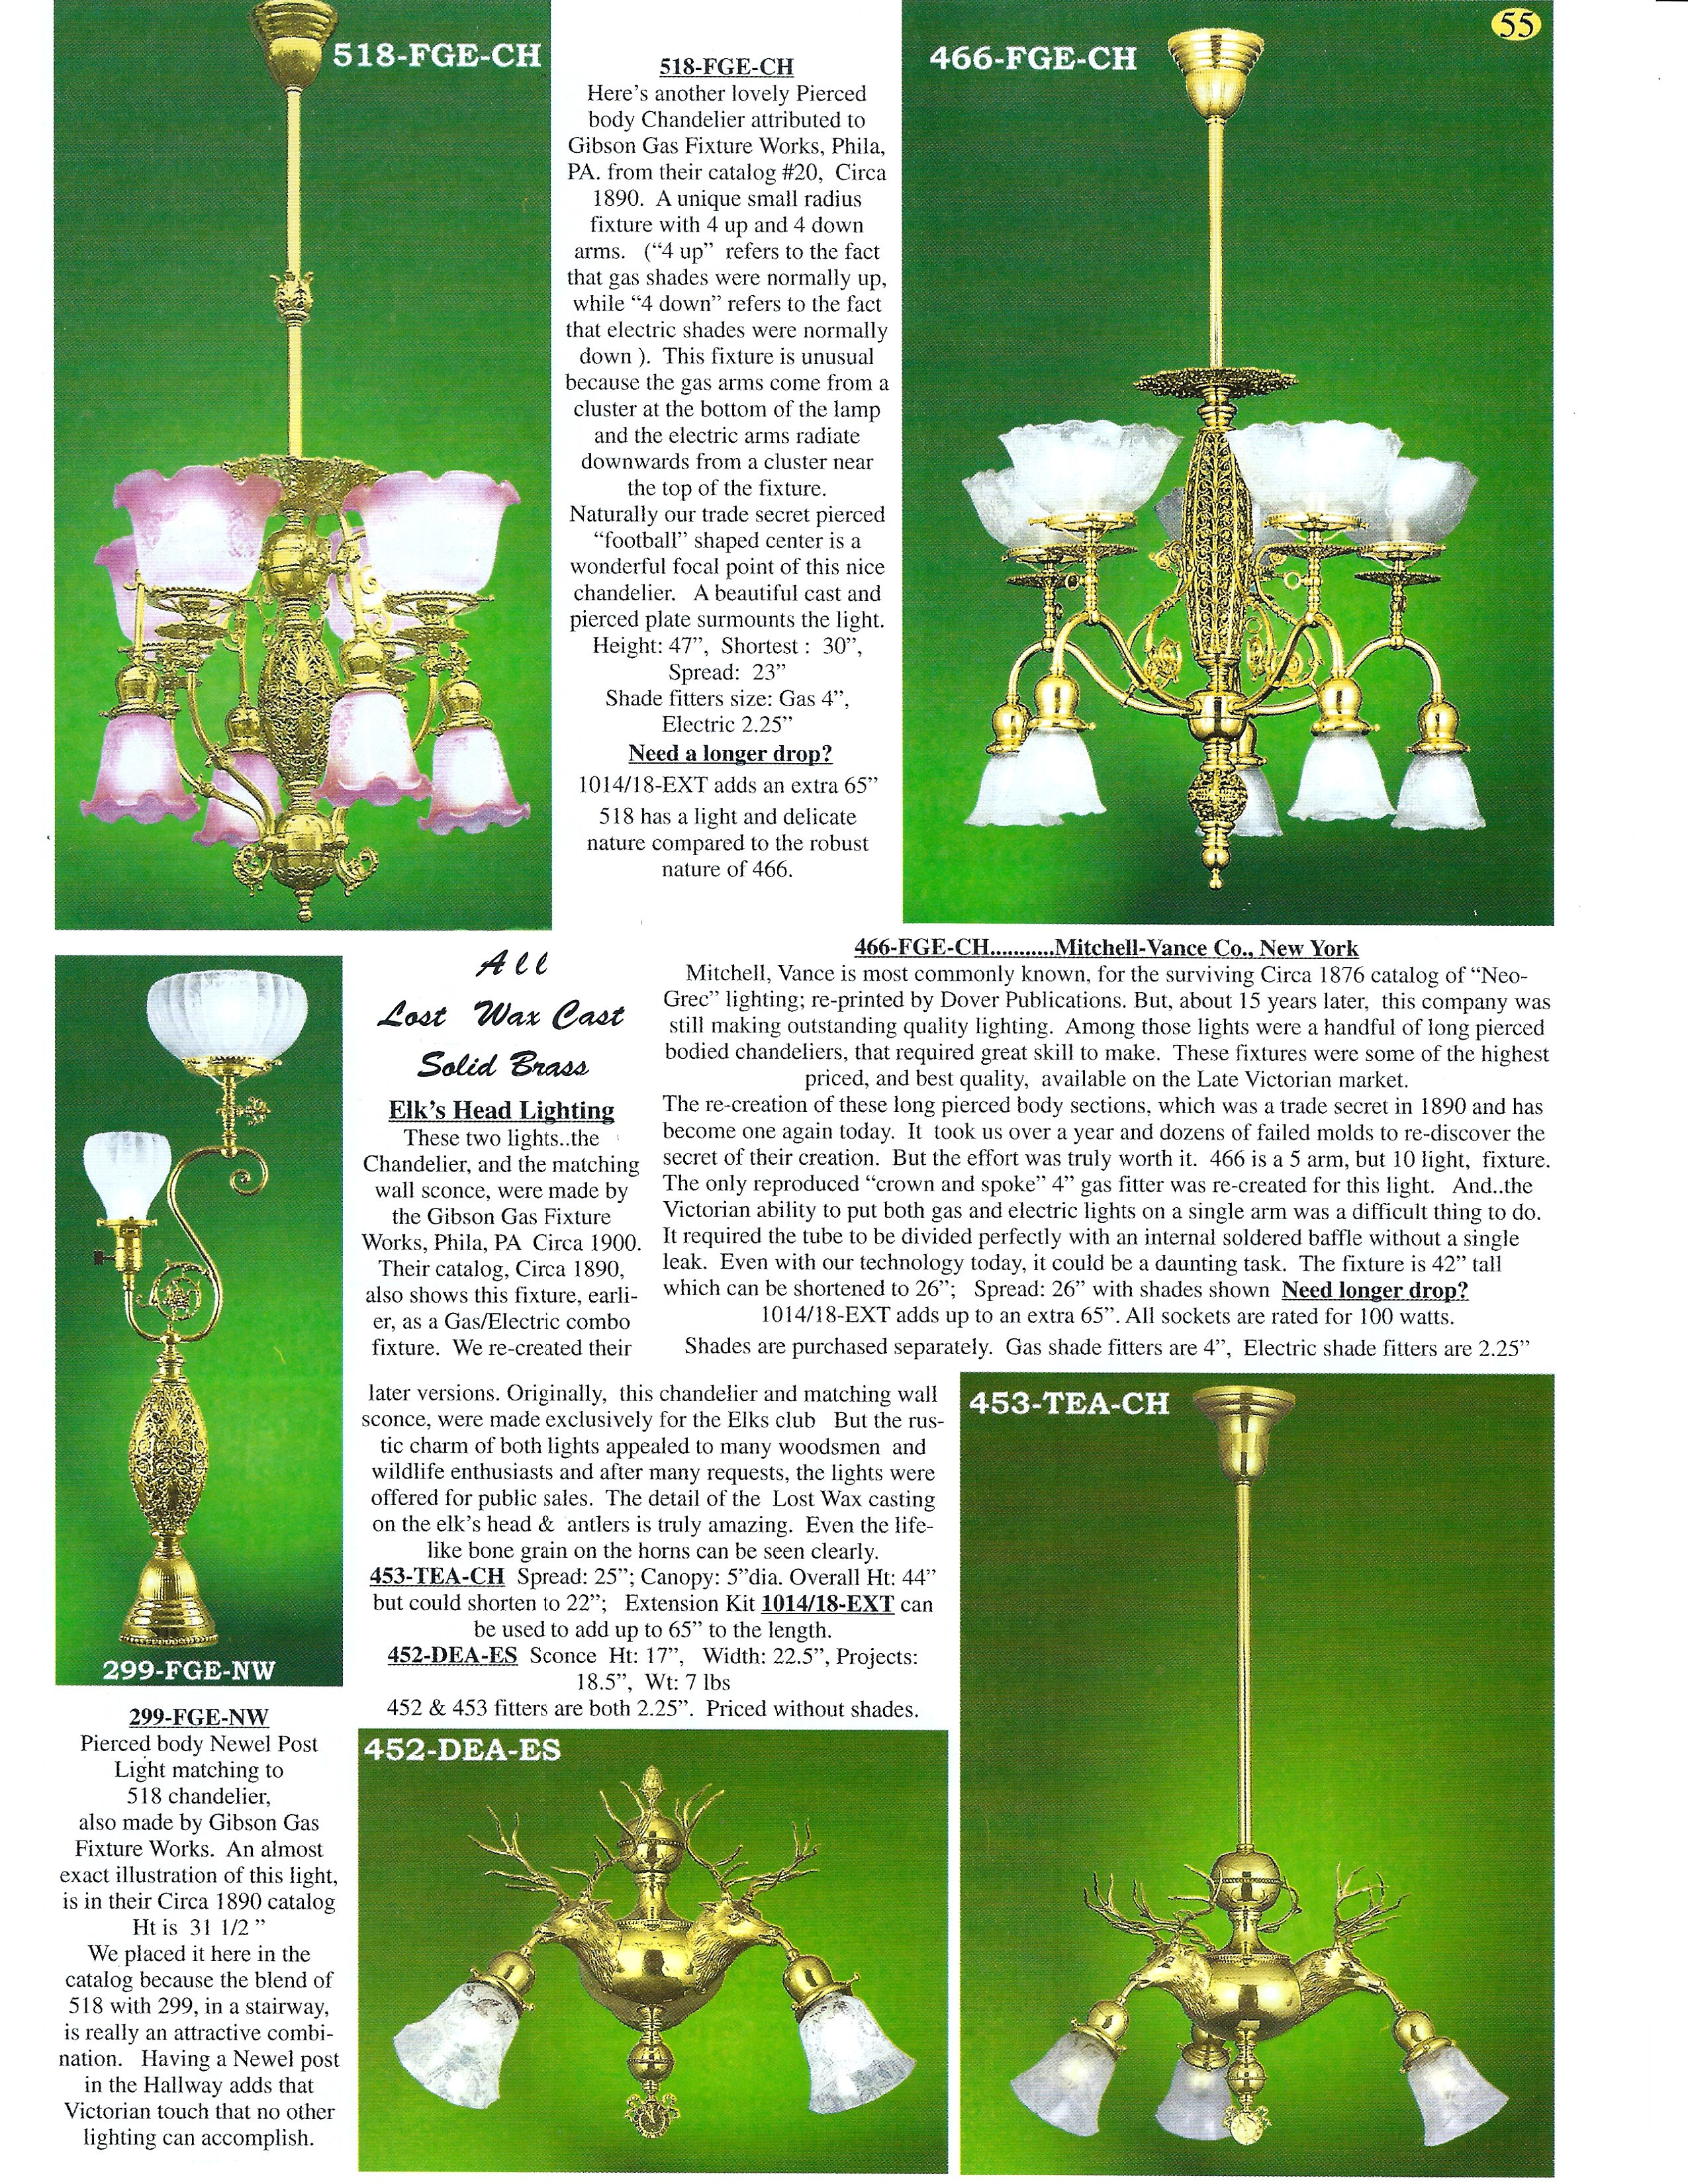 Catalog page 79